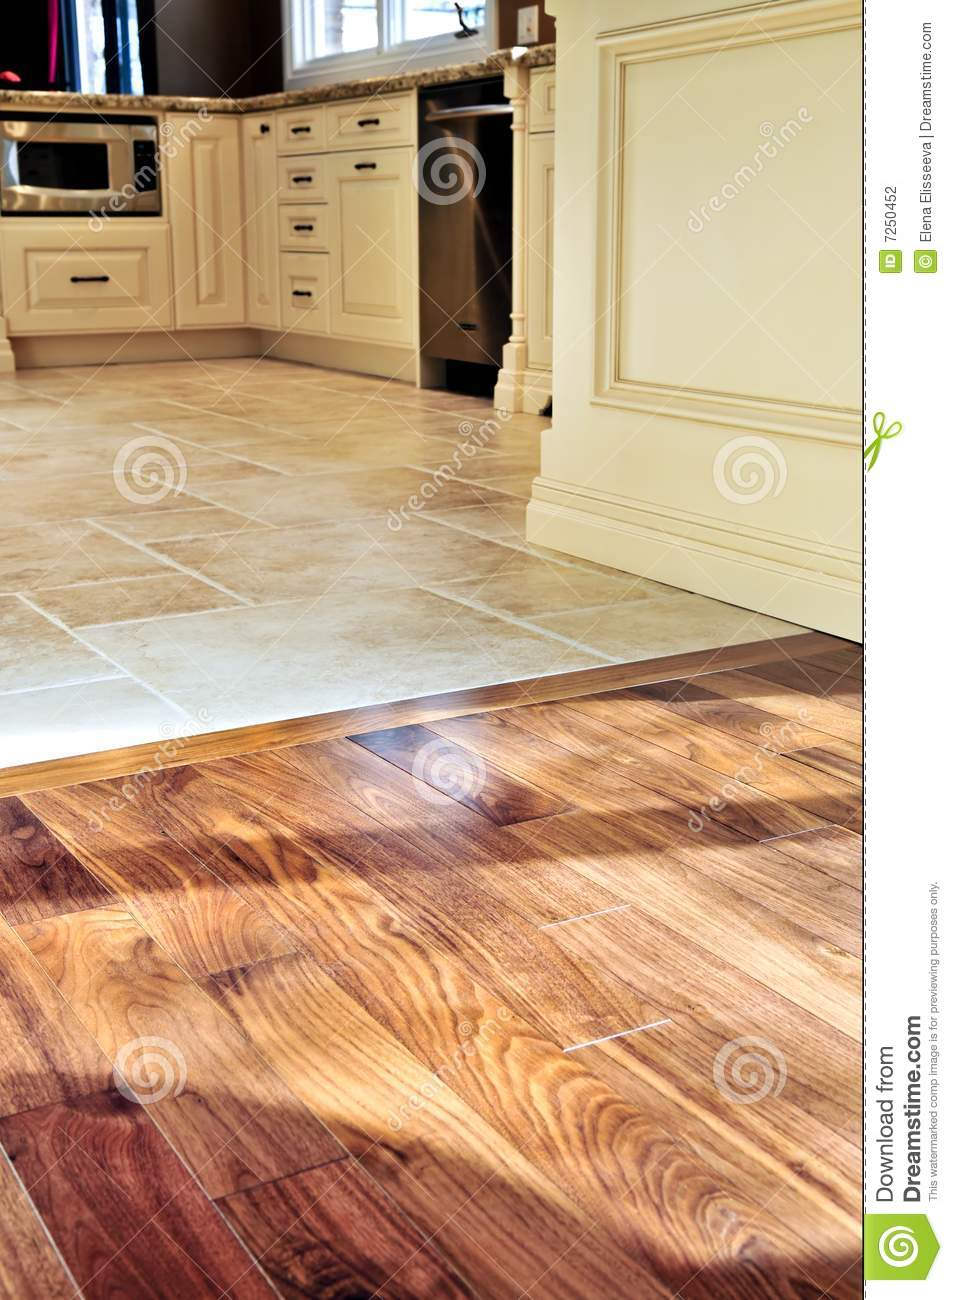 Hardwood and tile floor stock photography image 7250452 for Floor and tile